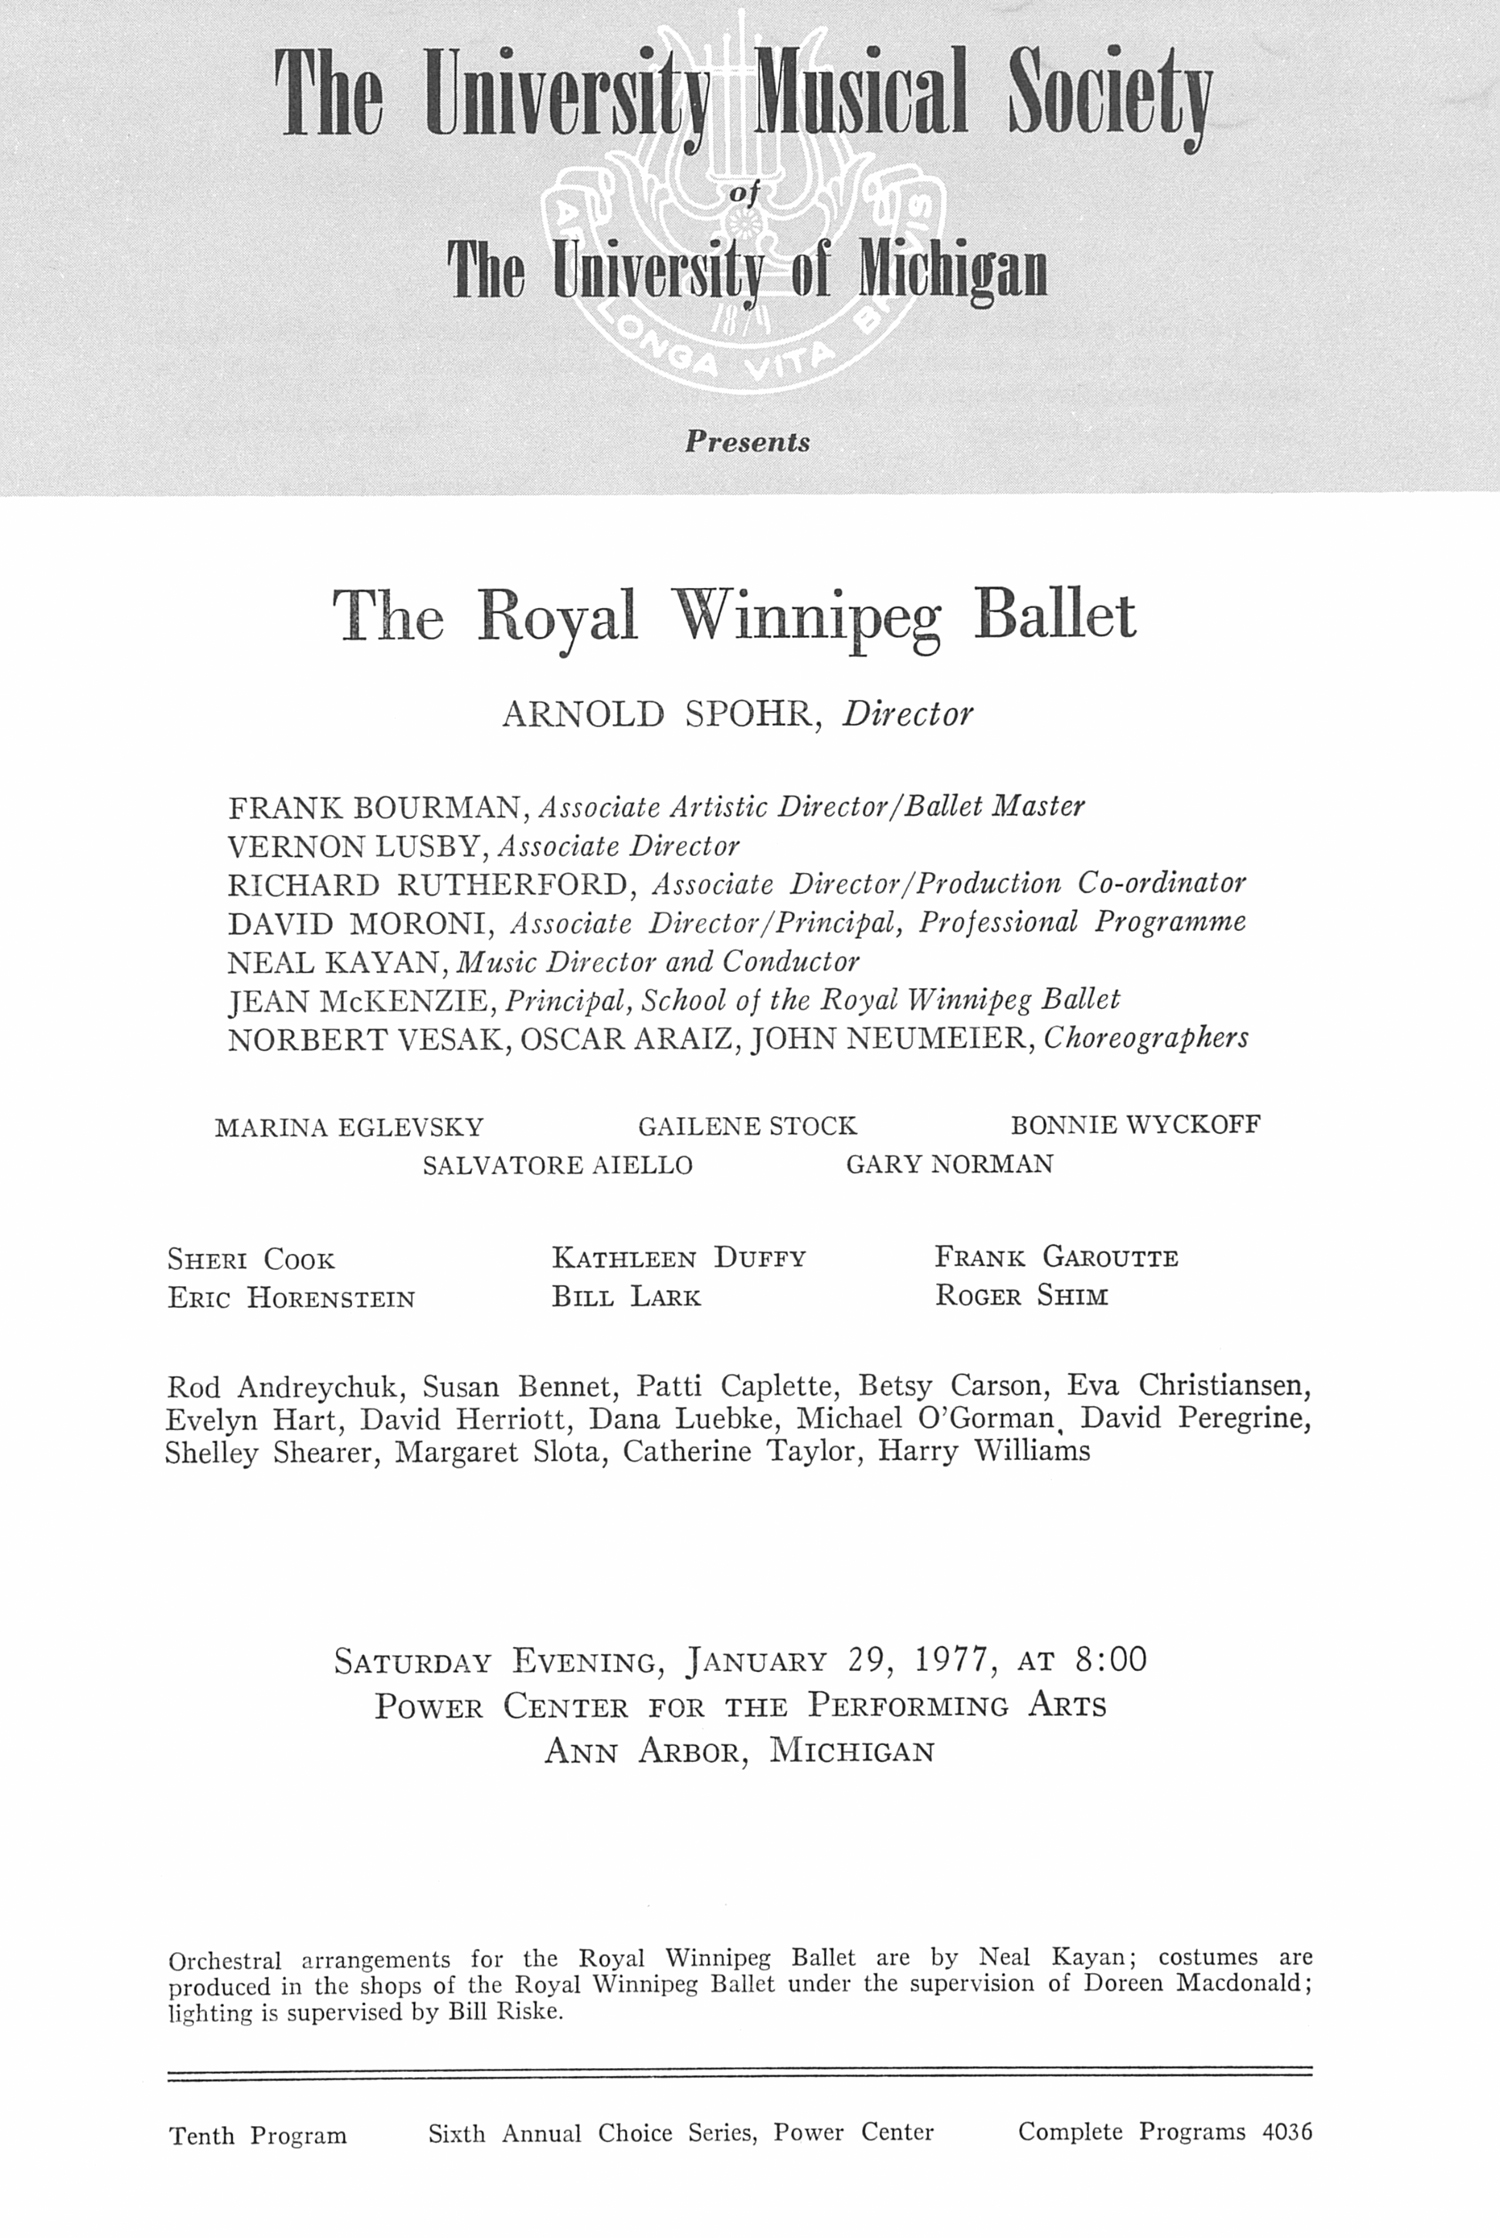 UMS Concert Program, January 29, 1977: The Royal Winnipeg Ballet -- Arnold Spohr image